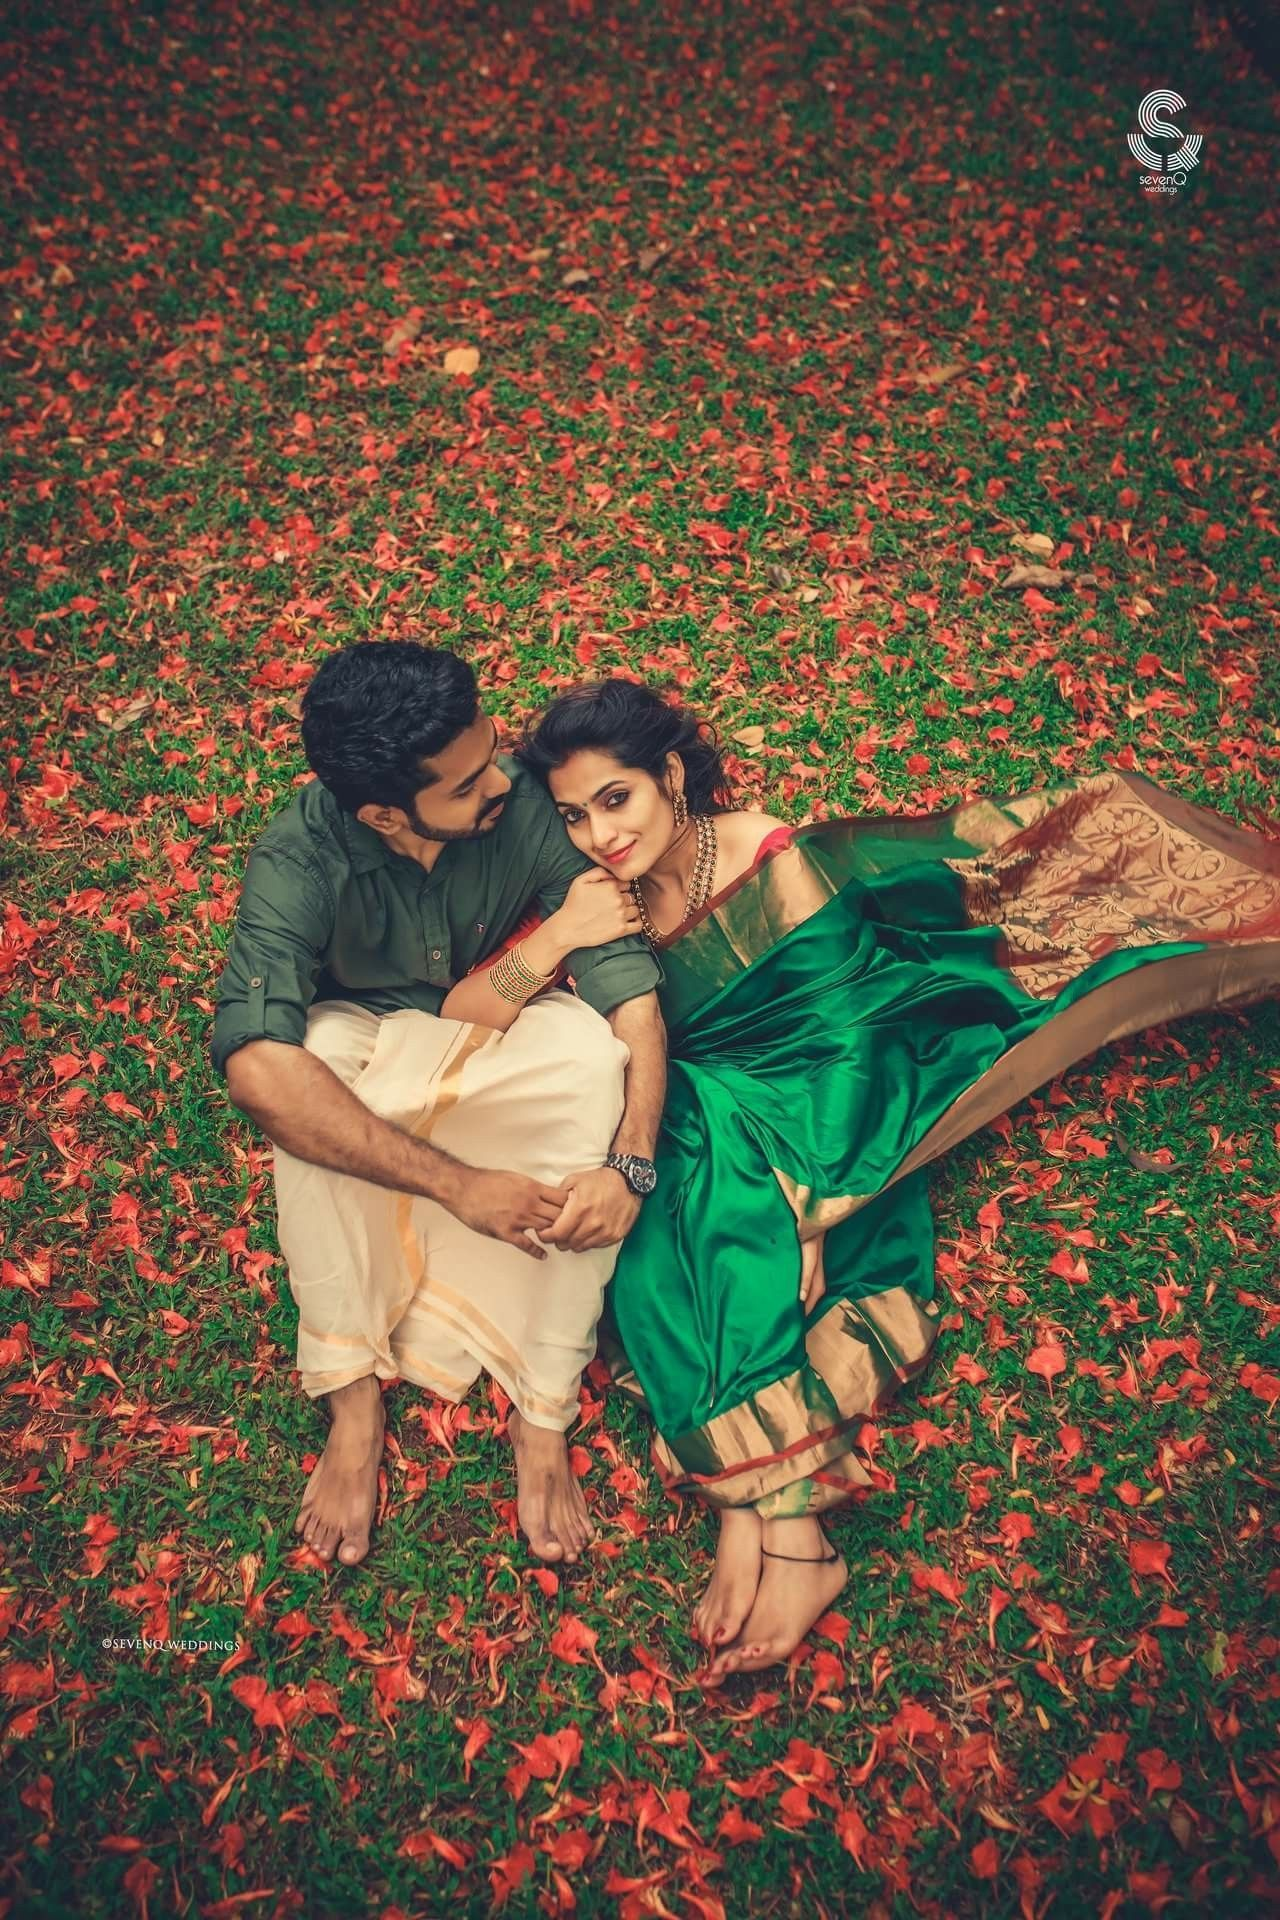 Kerala Couple Wallpapers Wallpaper Cave See more ideas about saree photoshoot, photoshoot, aiman khan. kerala couple wallpapers wallpaper cave